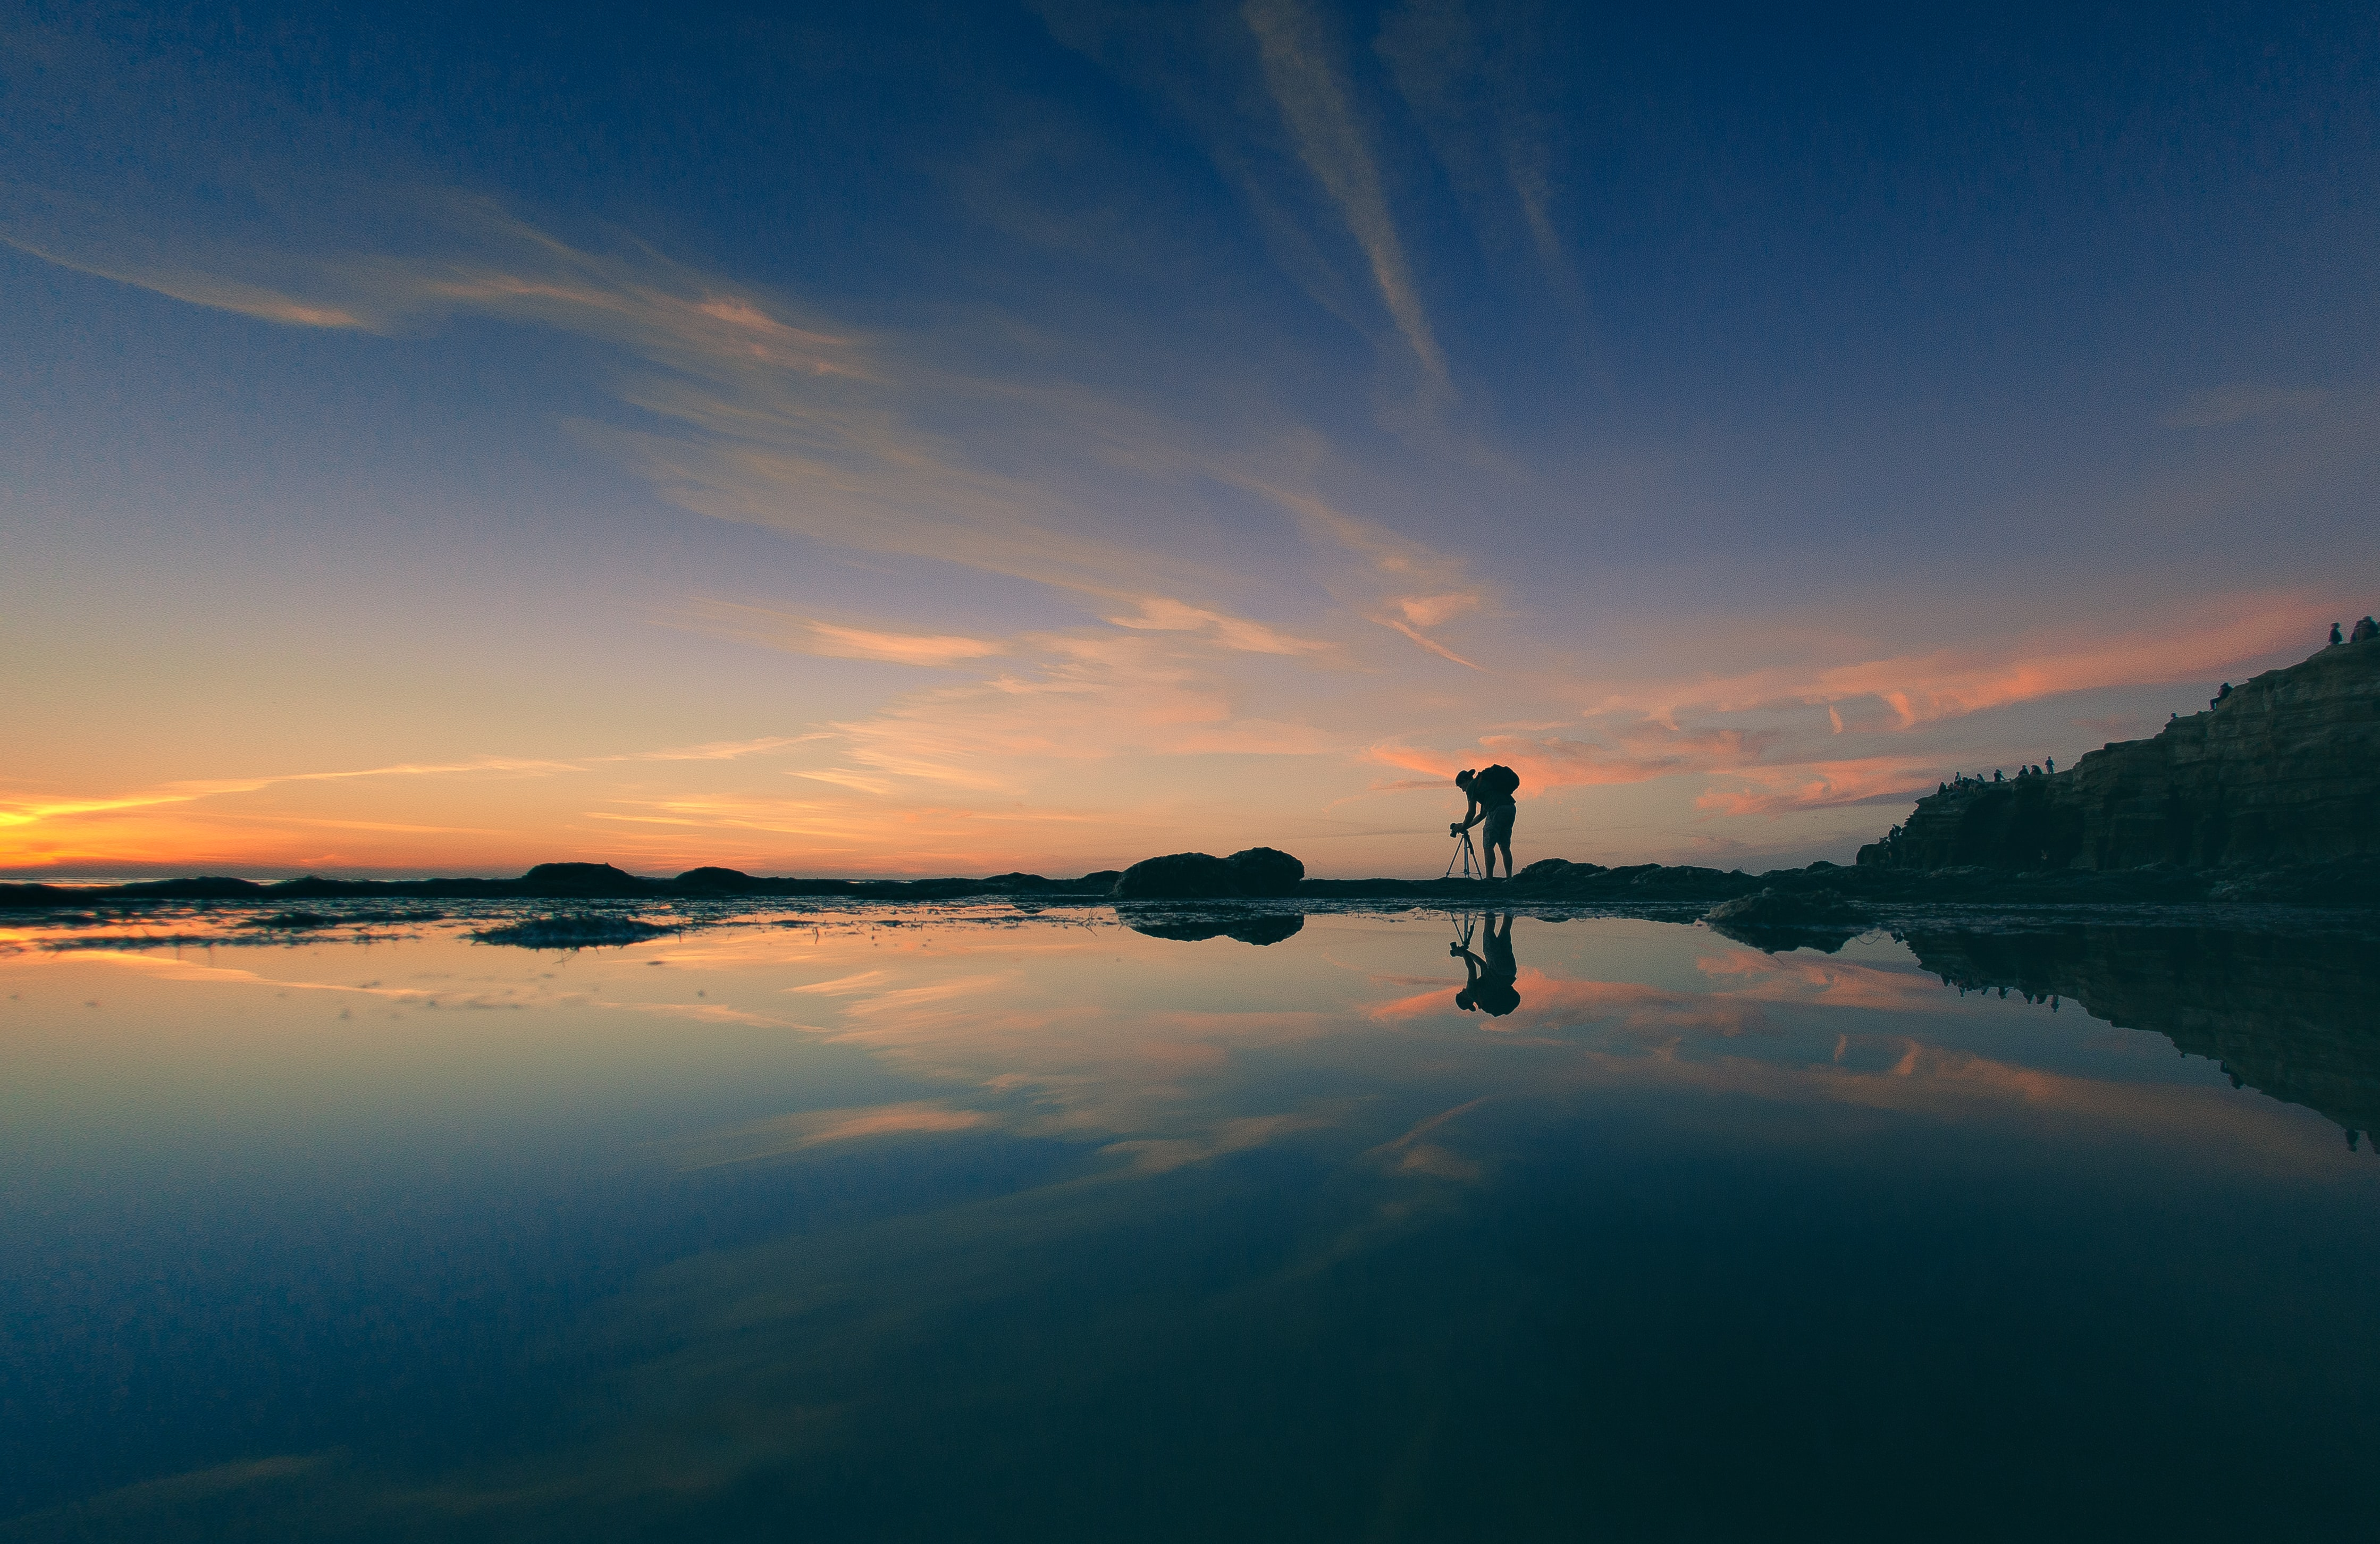 landscape photography of man adjusting camera tripod during golden hour